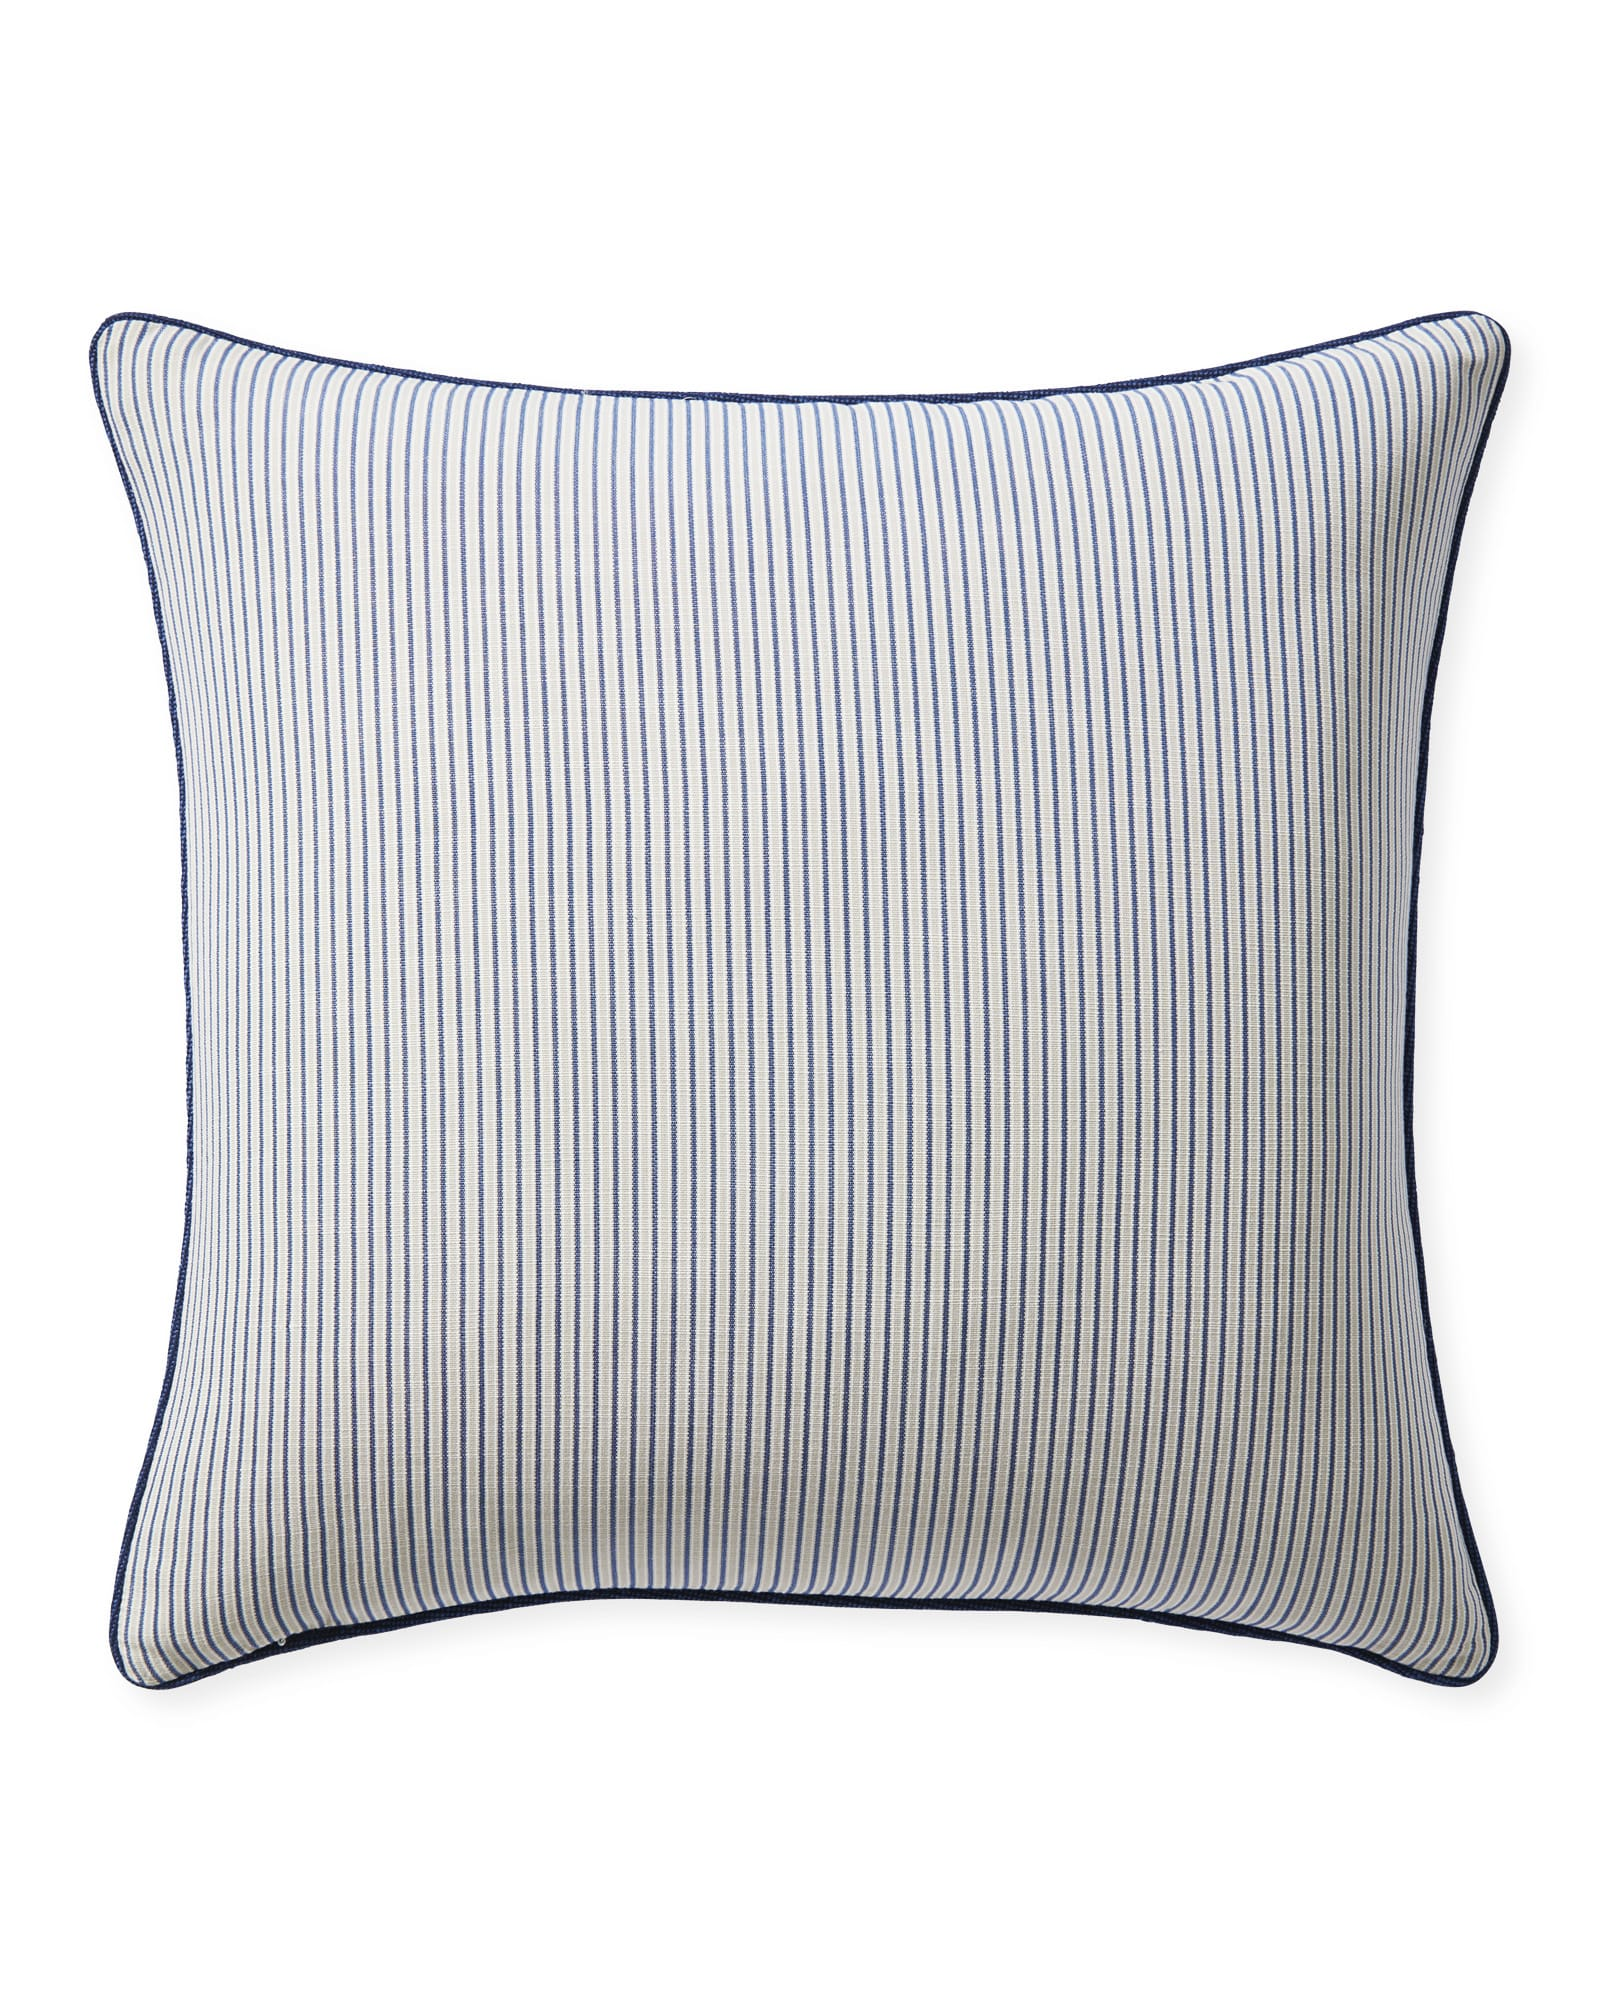 Perennials Shirting Stripe Pillow Cover